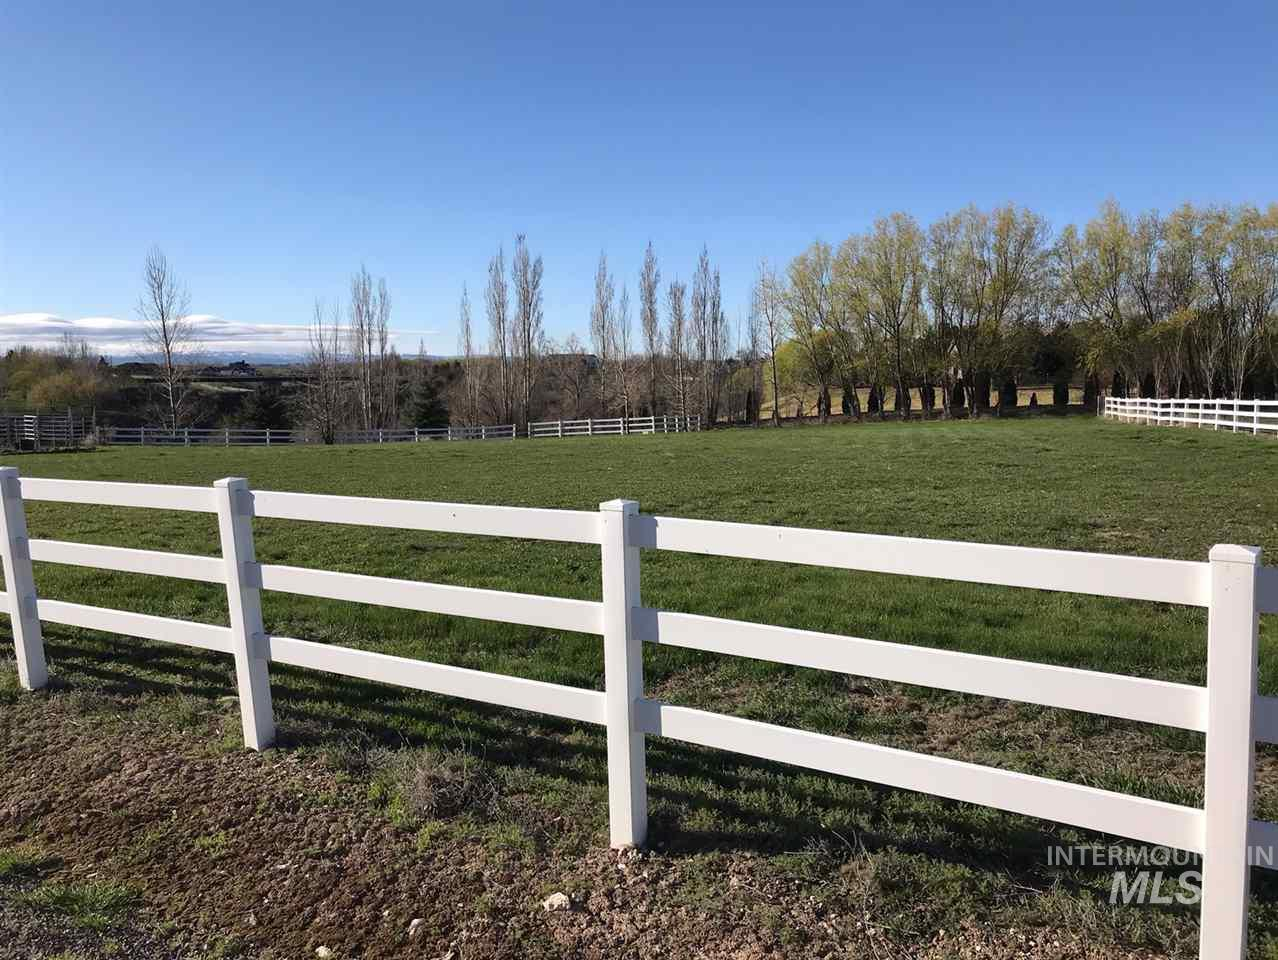 2611 E. 4128 N., Filer, Idaho 83328, Land For Sale, Price $125,000, 98725708